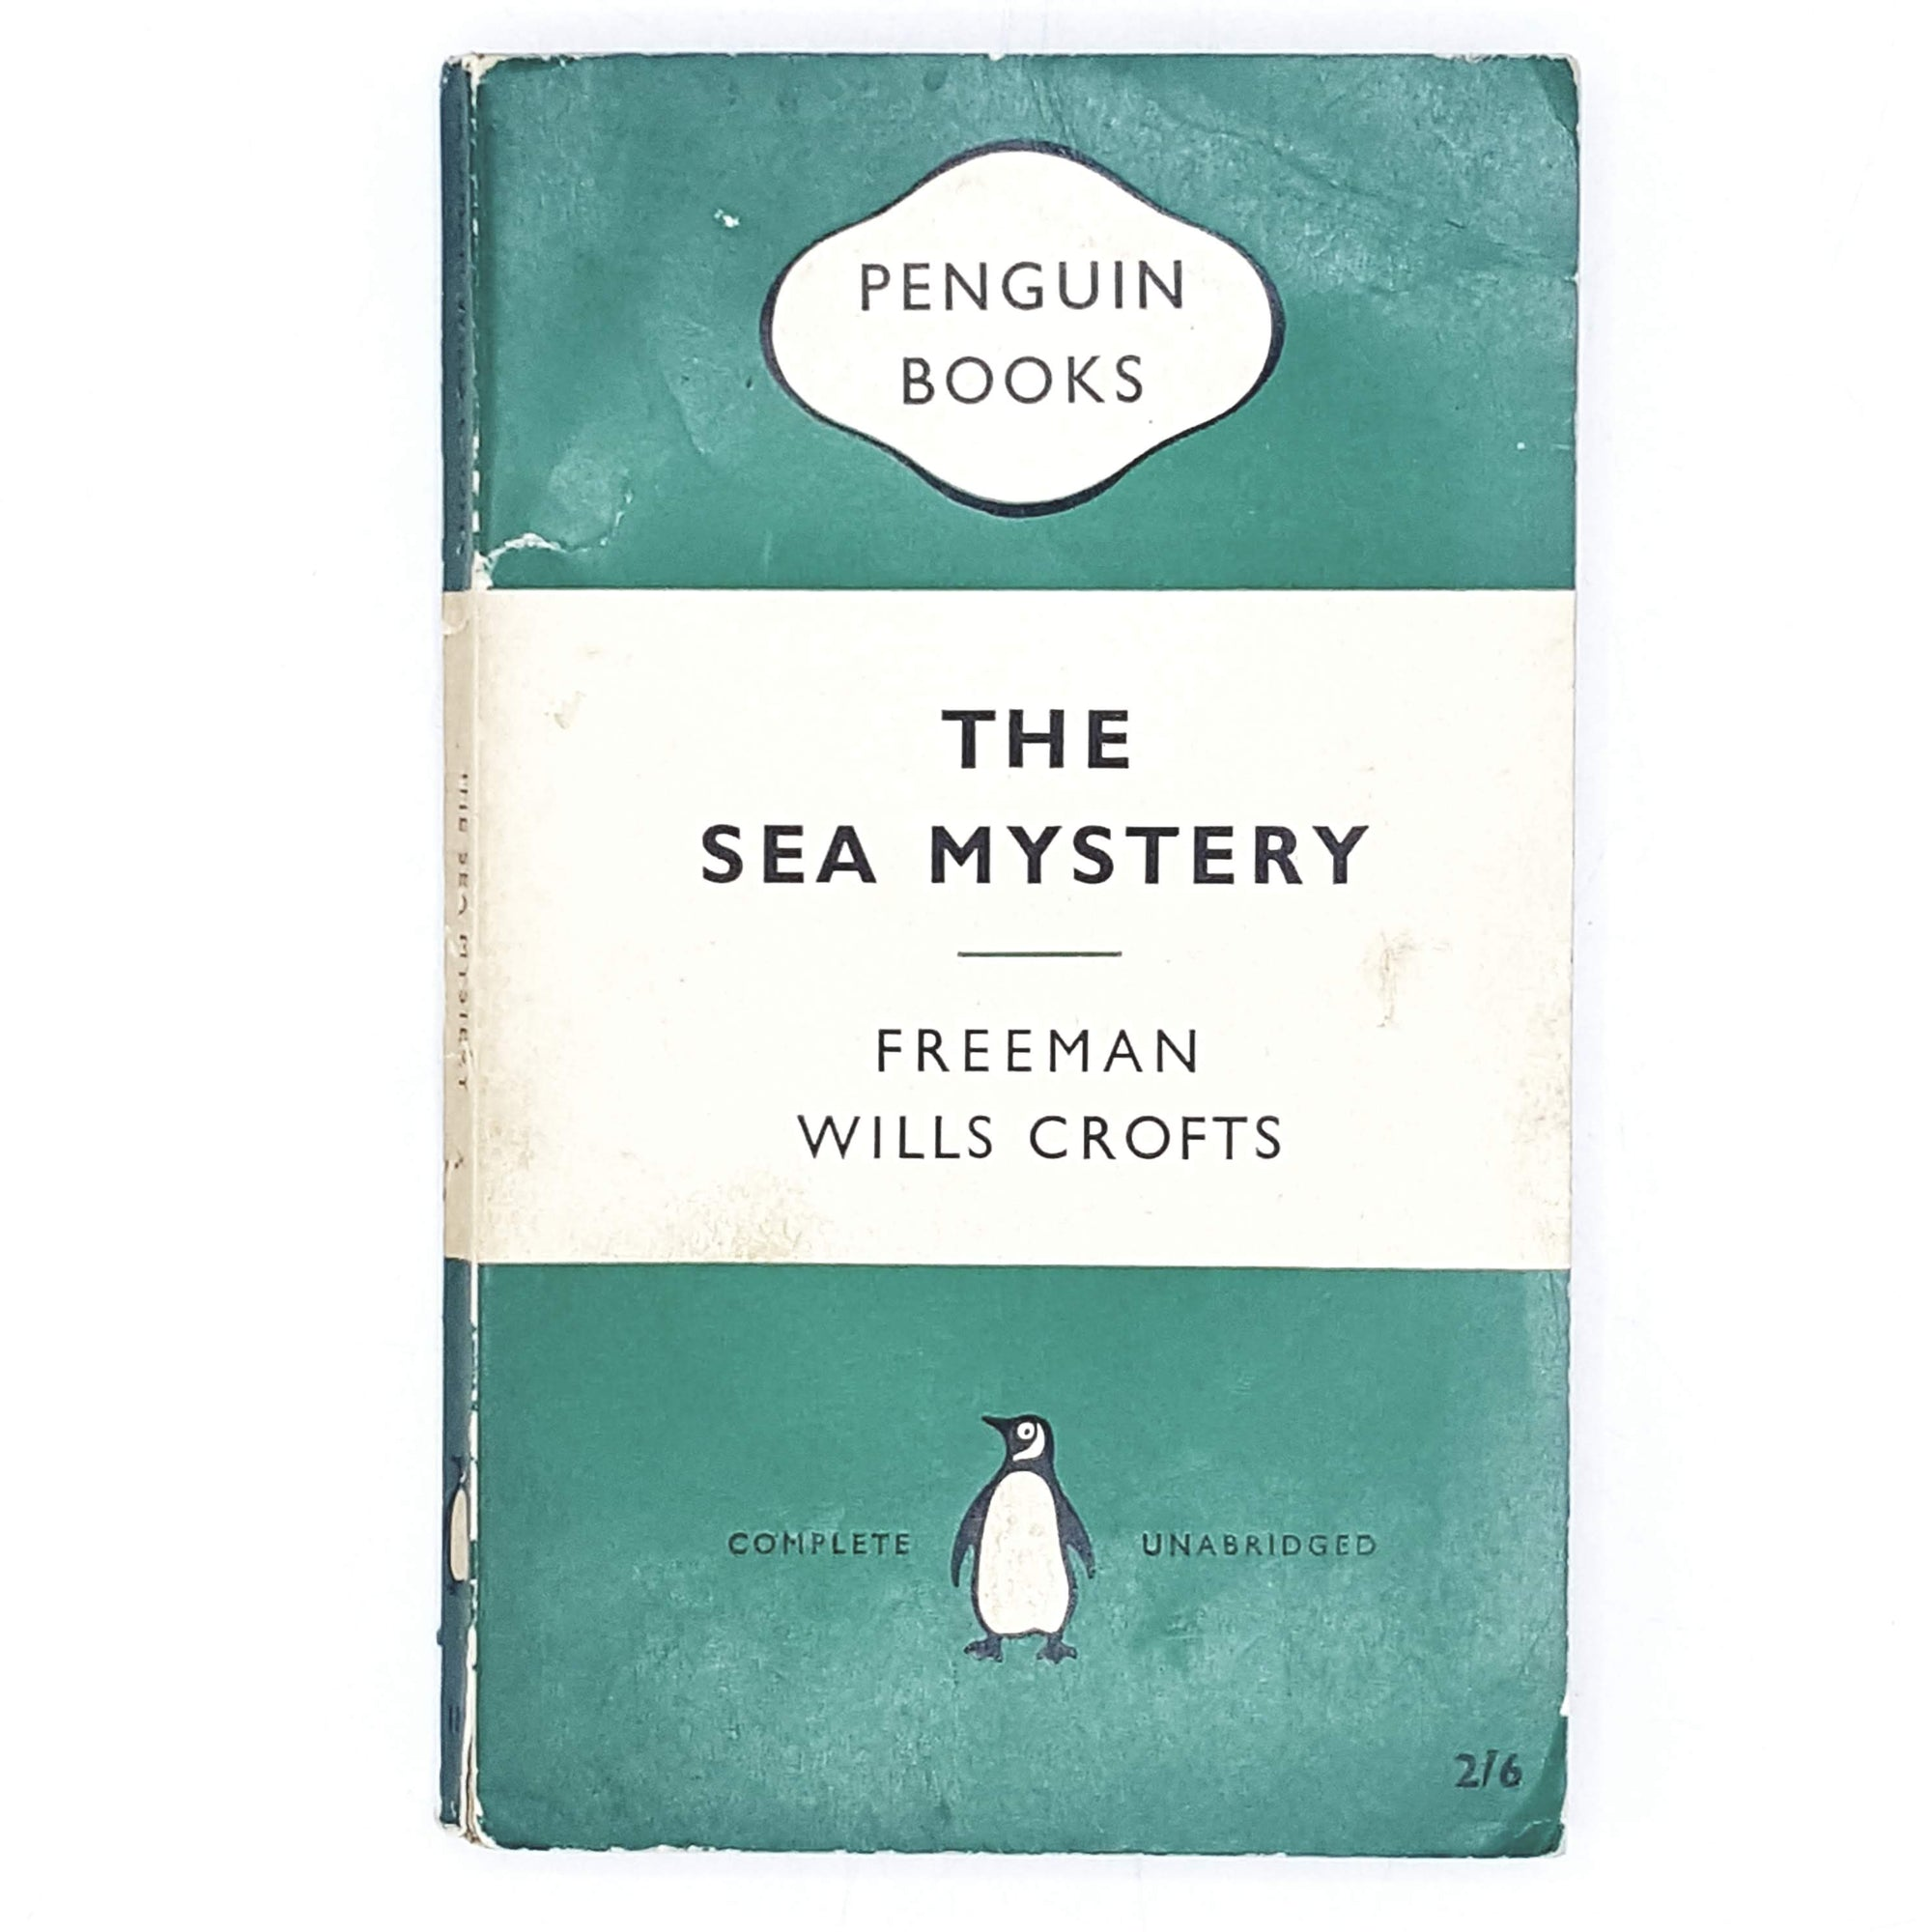 First Edition Penguin The Sea Mystery by Freeman Wills Crofts 1959